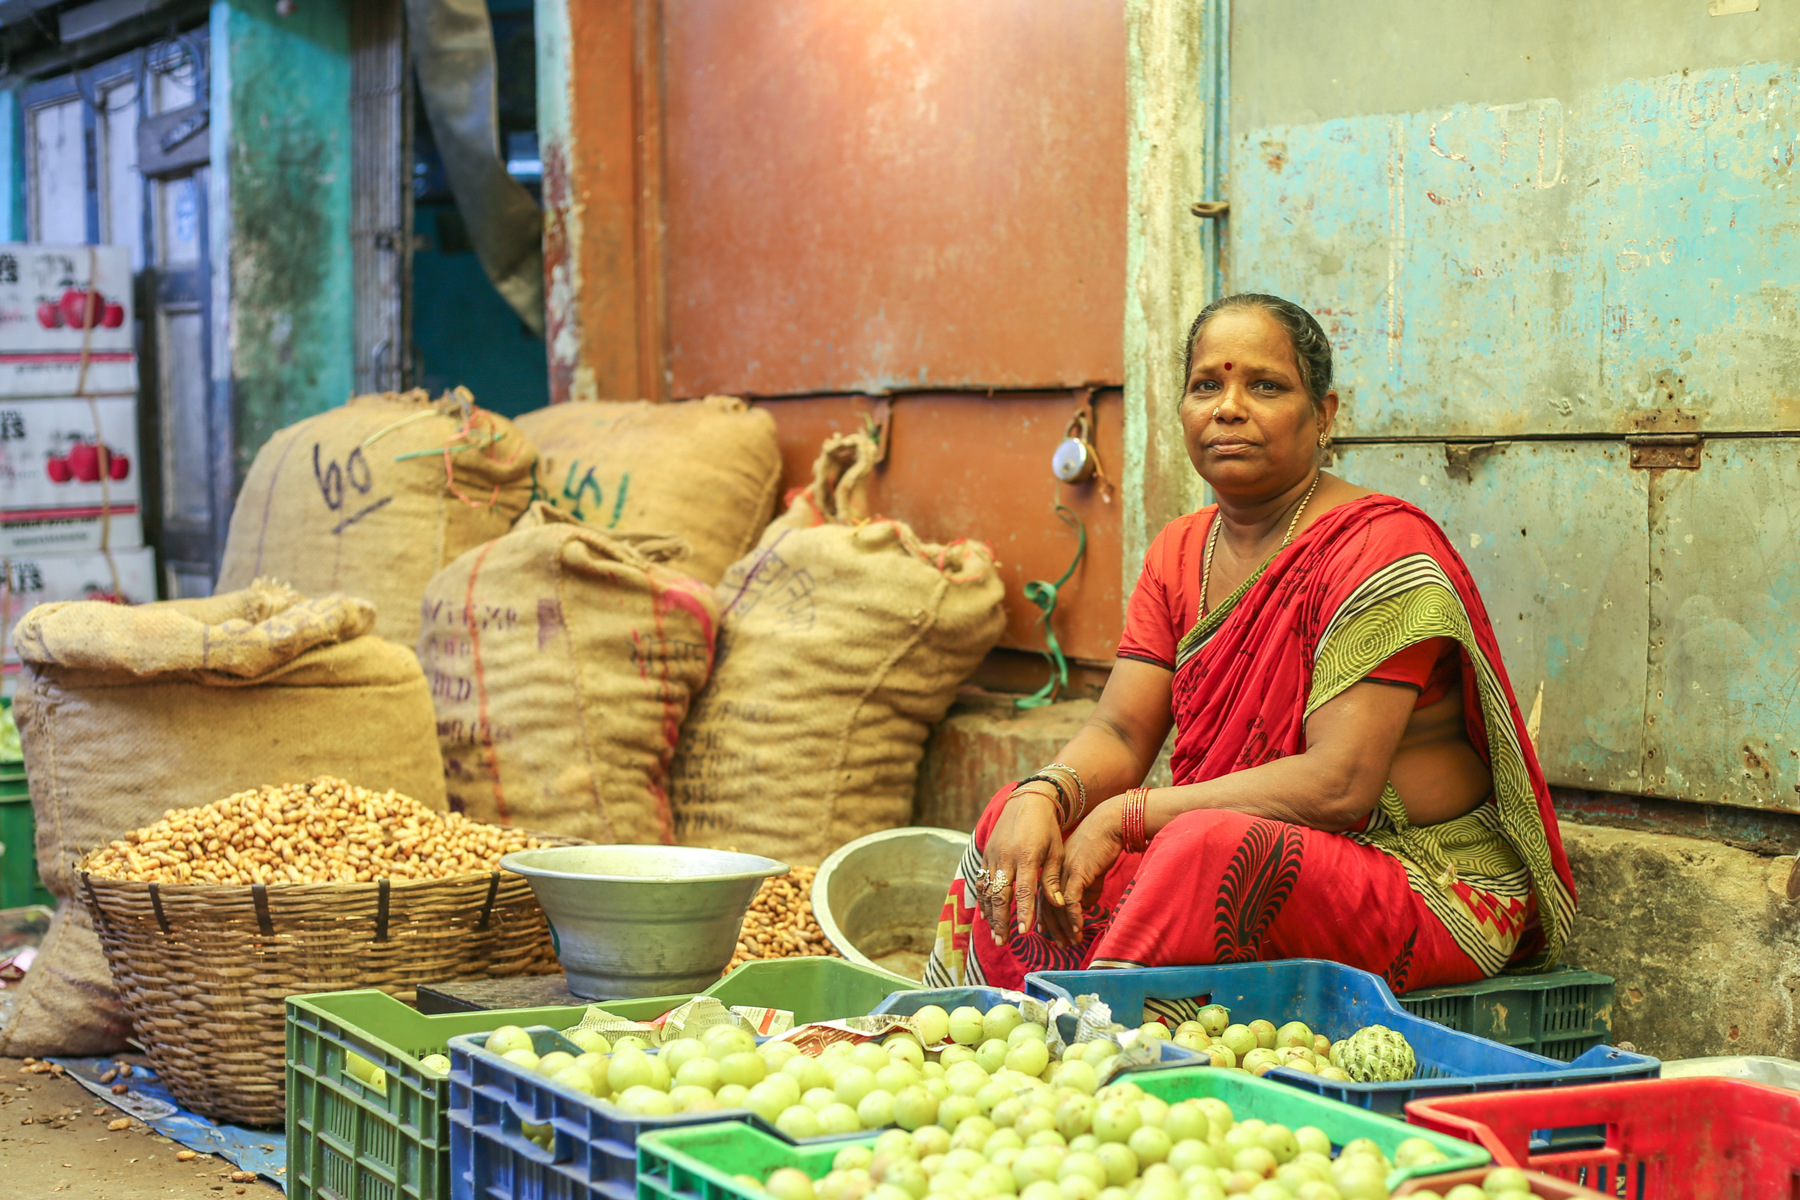 Inde-marché-photo-pondichery-goubert-market